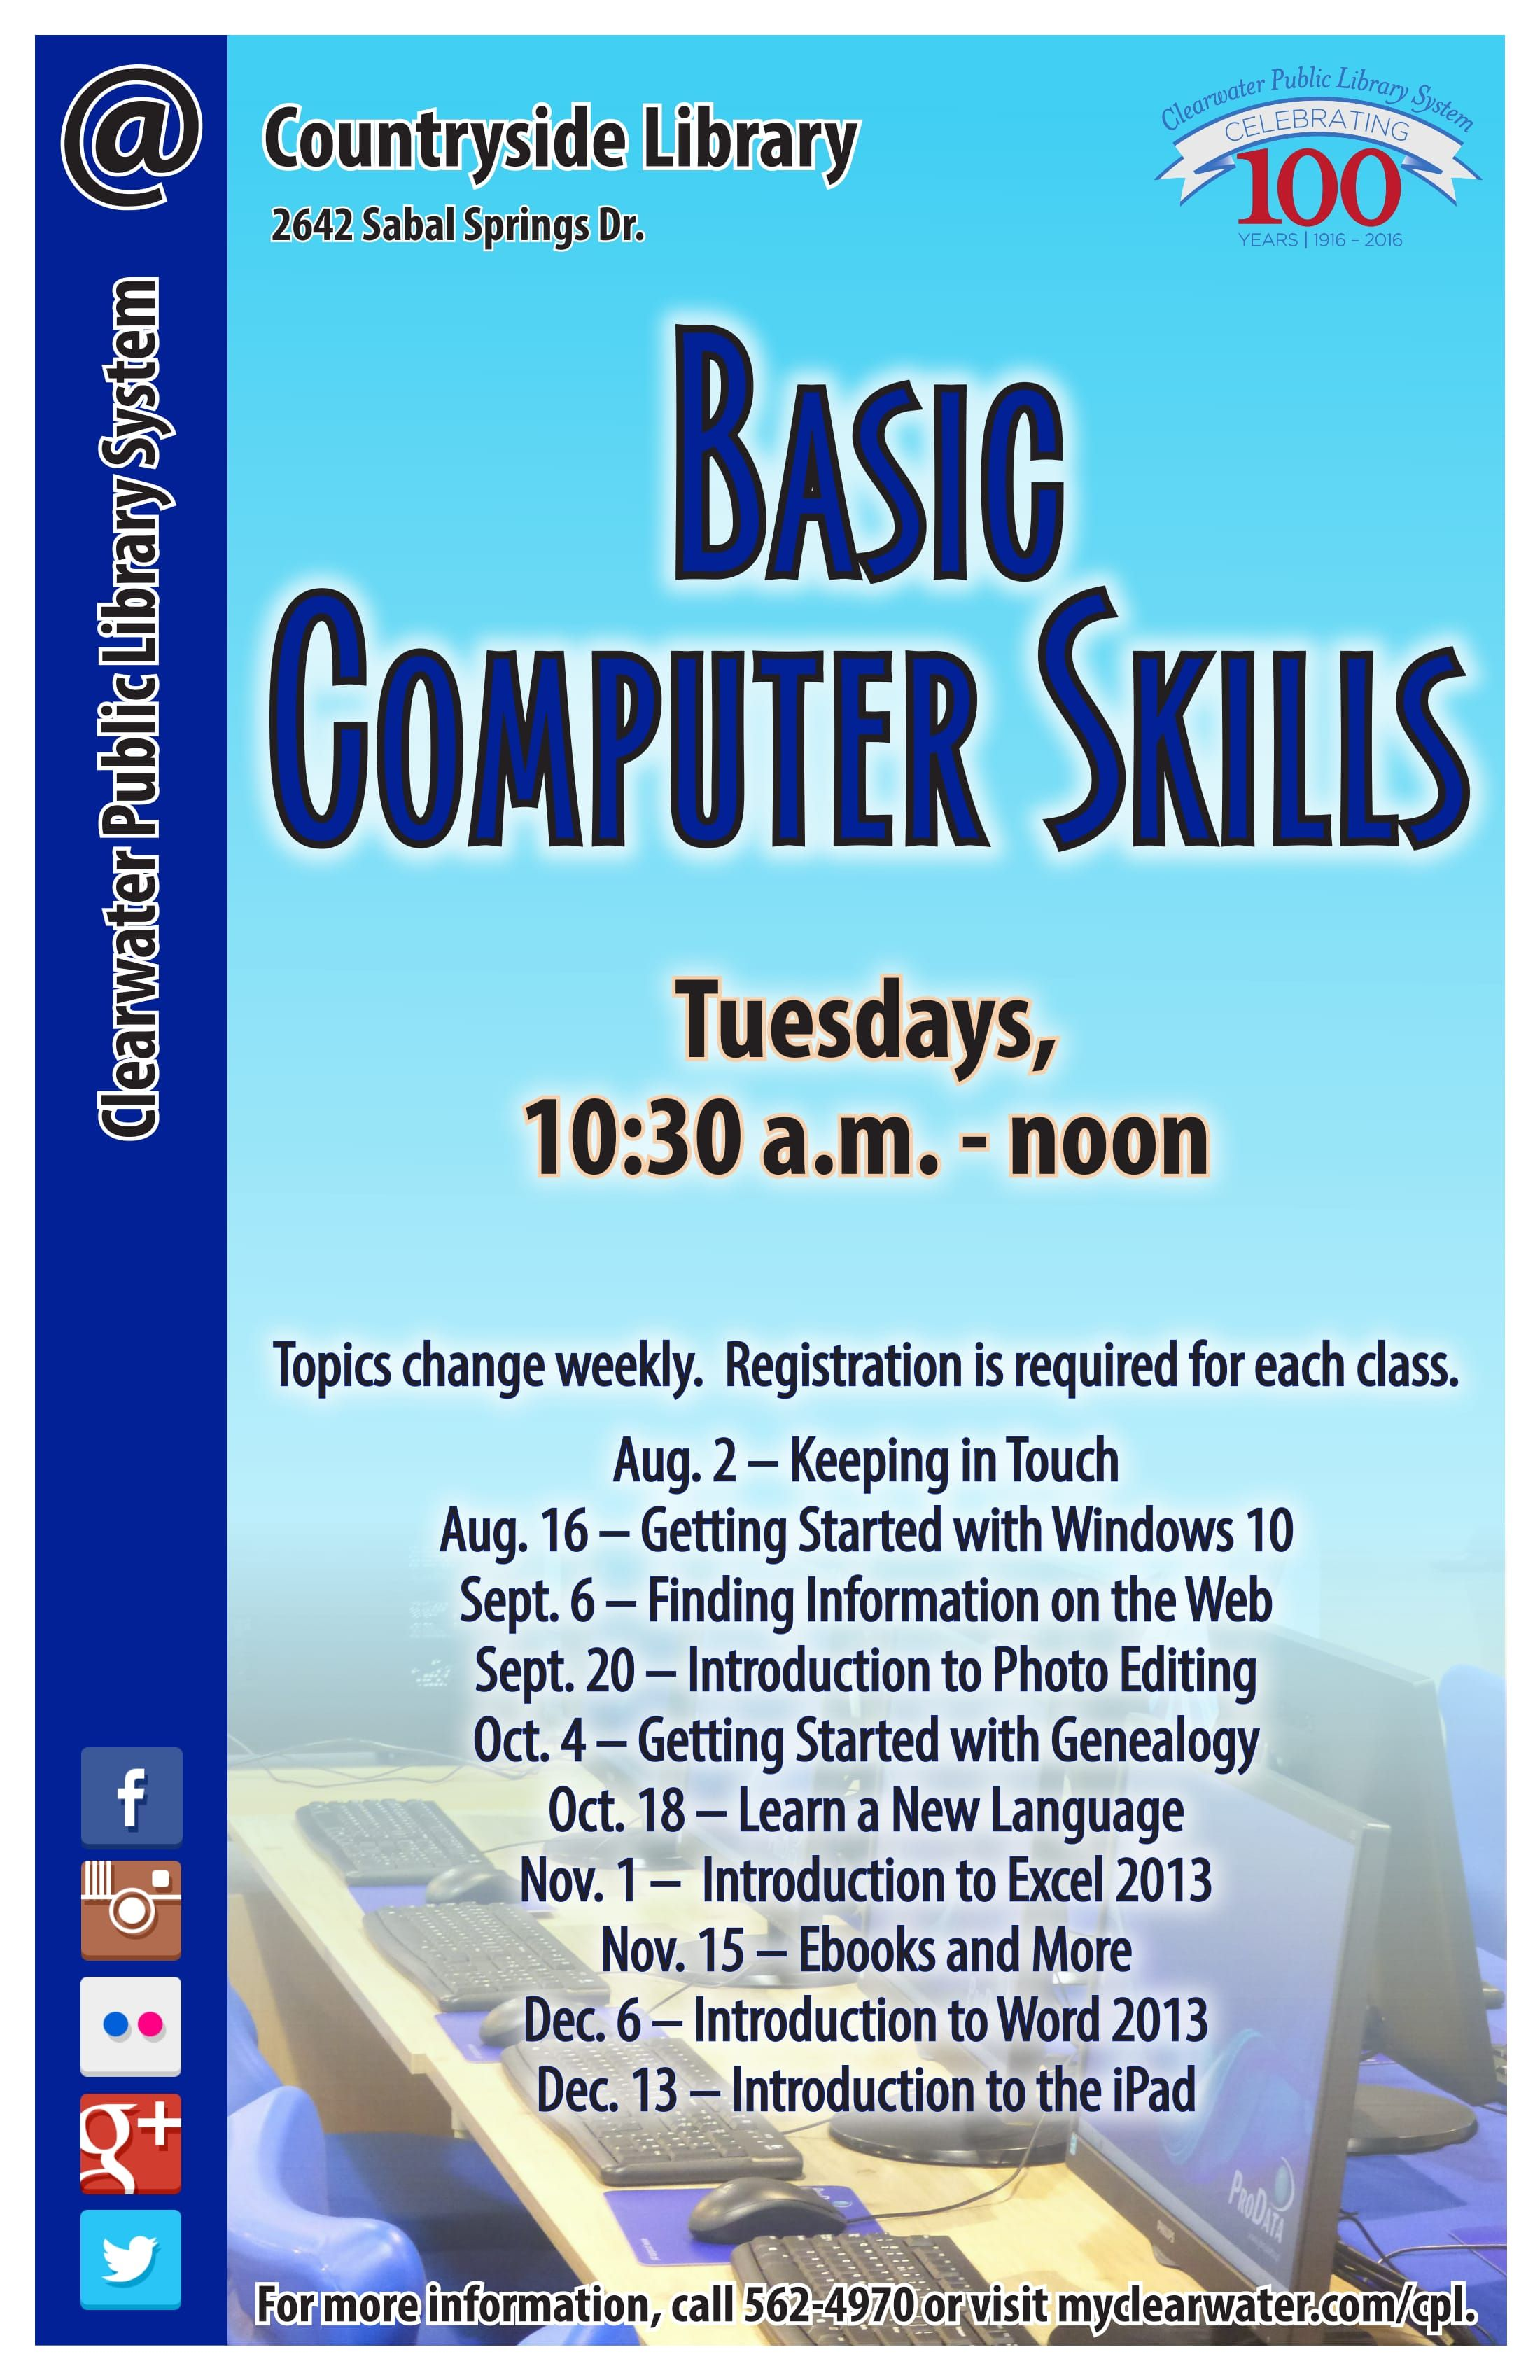 Weekly Basic Computer Skills Classes The Topic Changes Weekly From Windows 10 To Software For Learning A New Learn A New Language Computer Skills Clear Water